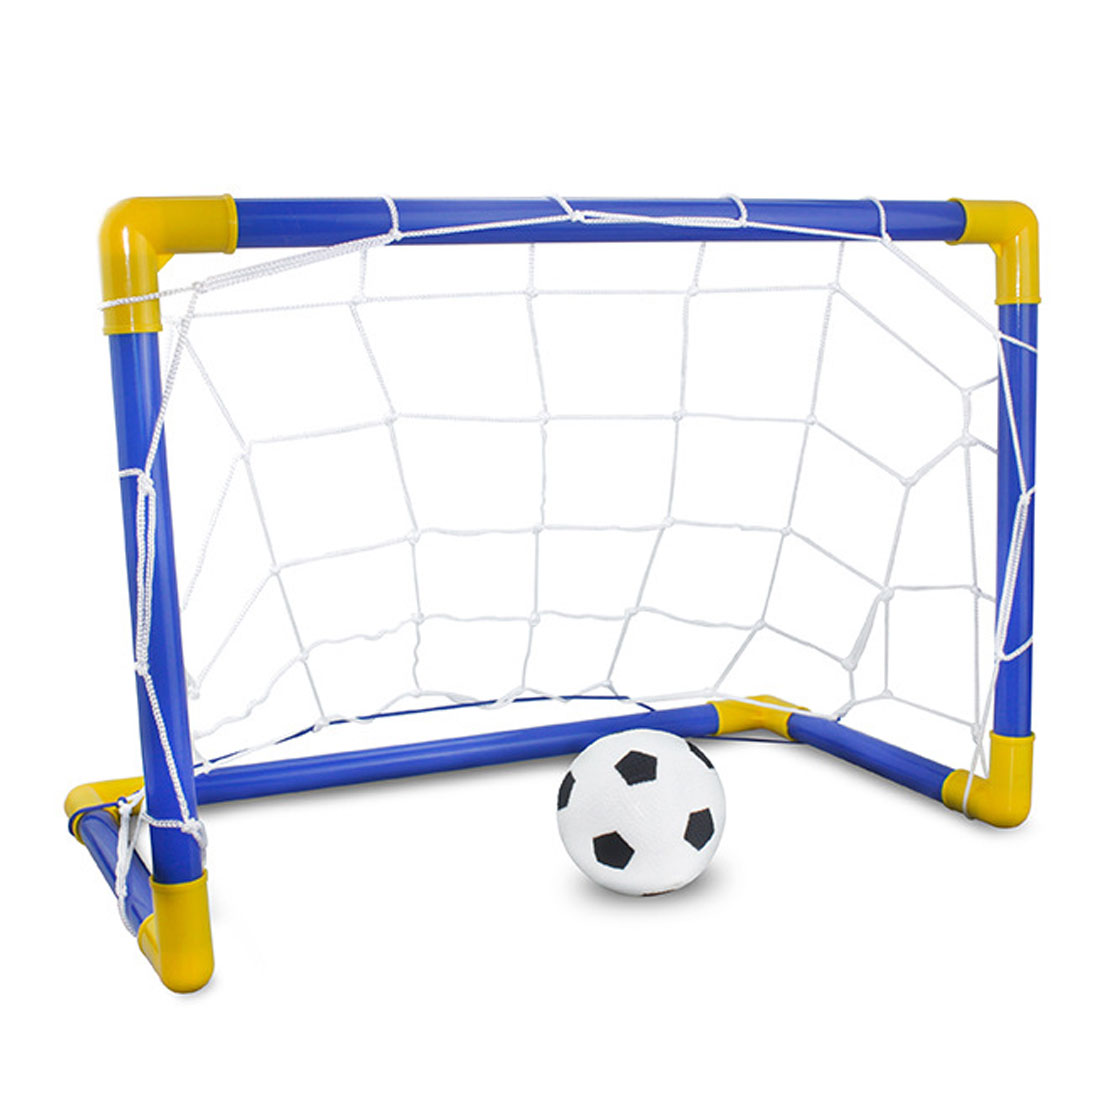 Hot 1 Set Children Sports Soccer Goals With Soccer Ball And Pump Outdoor Sports Practice Scrimmage Game Detachable Football Gate